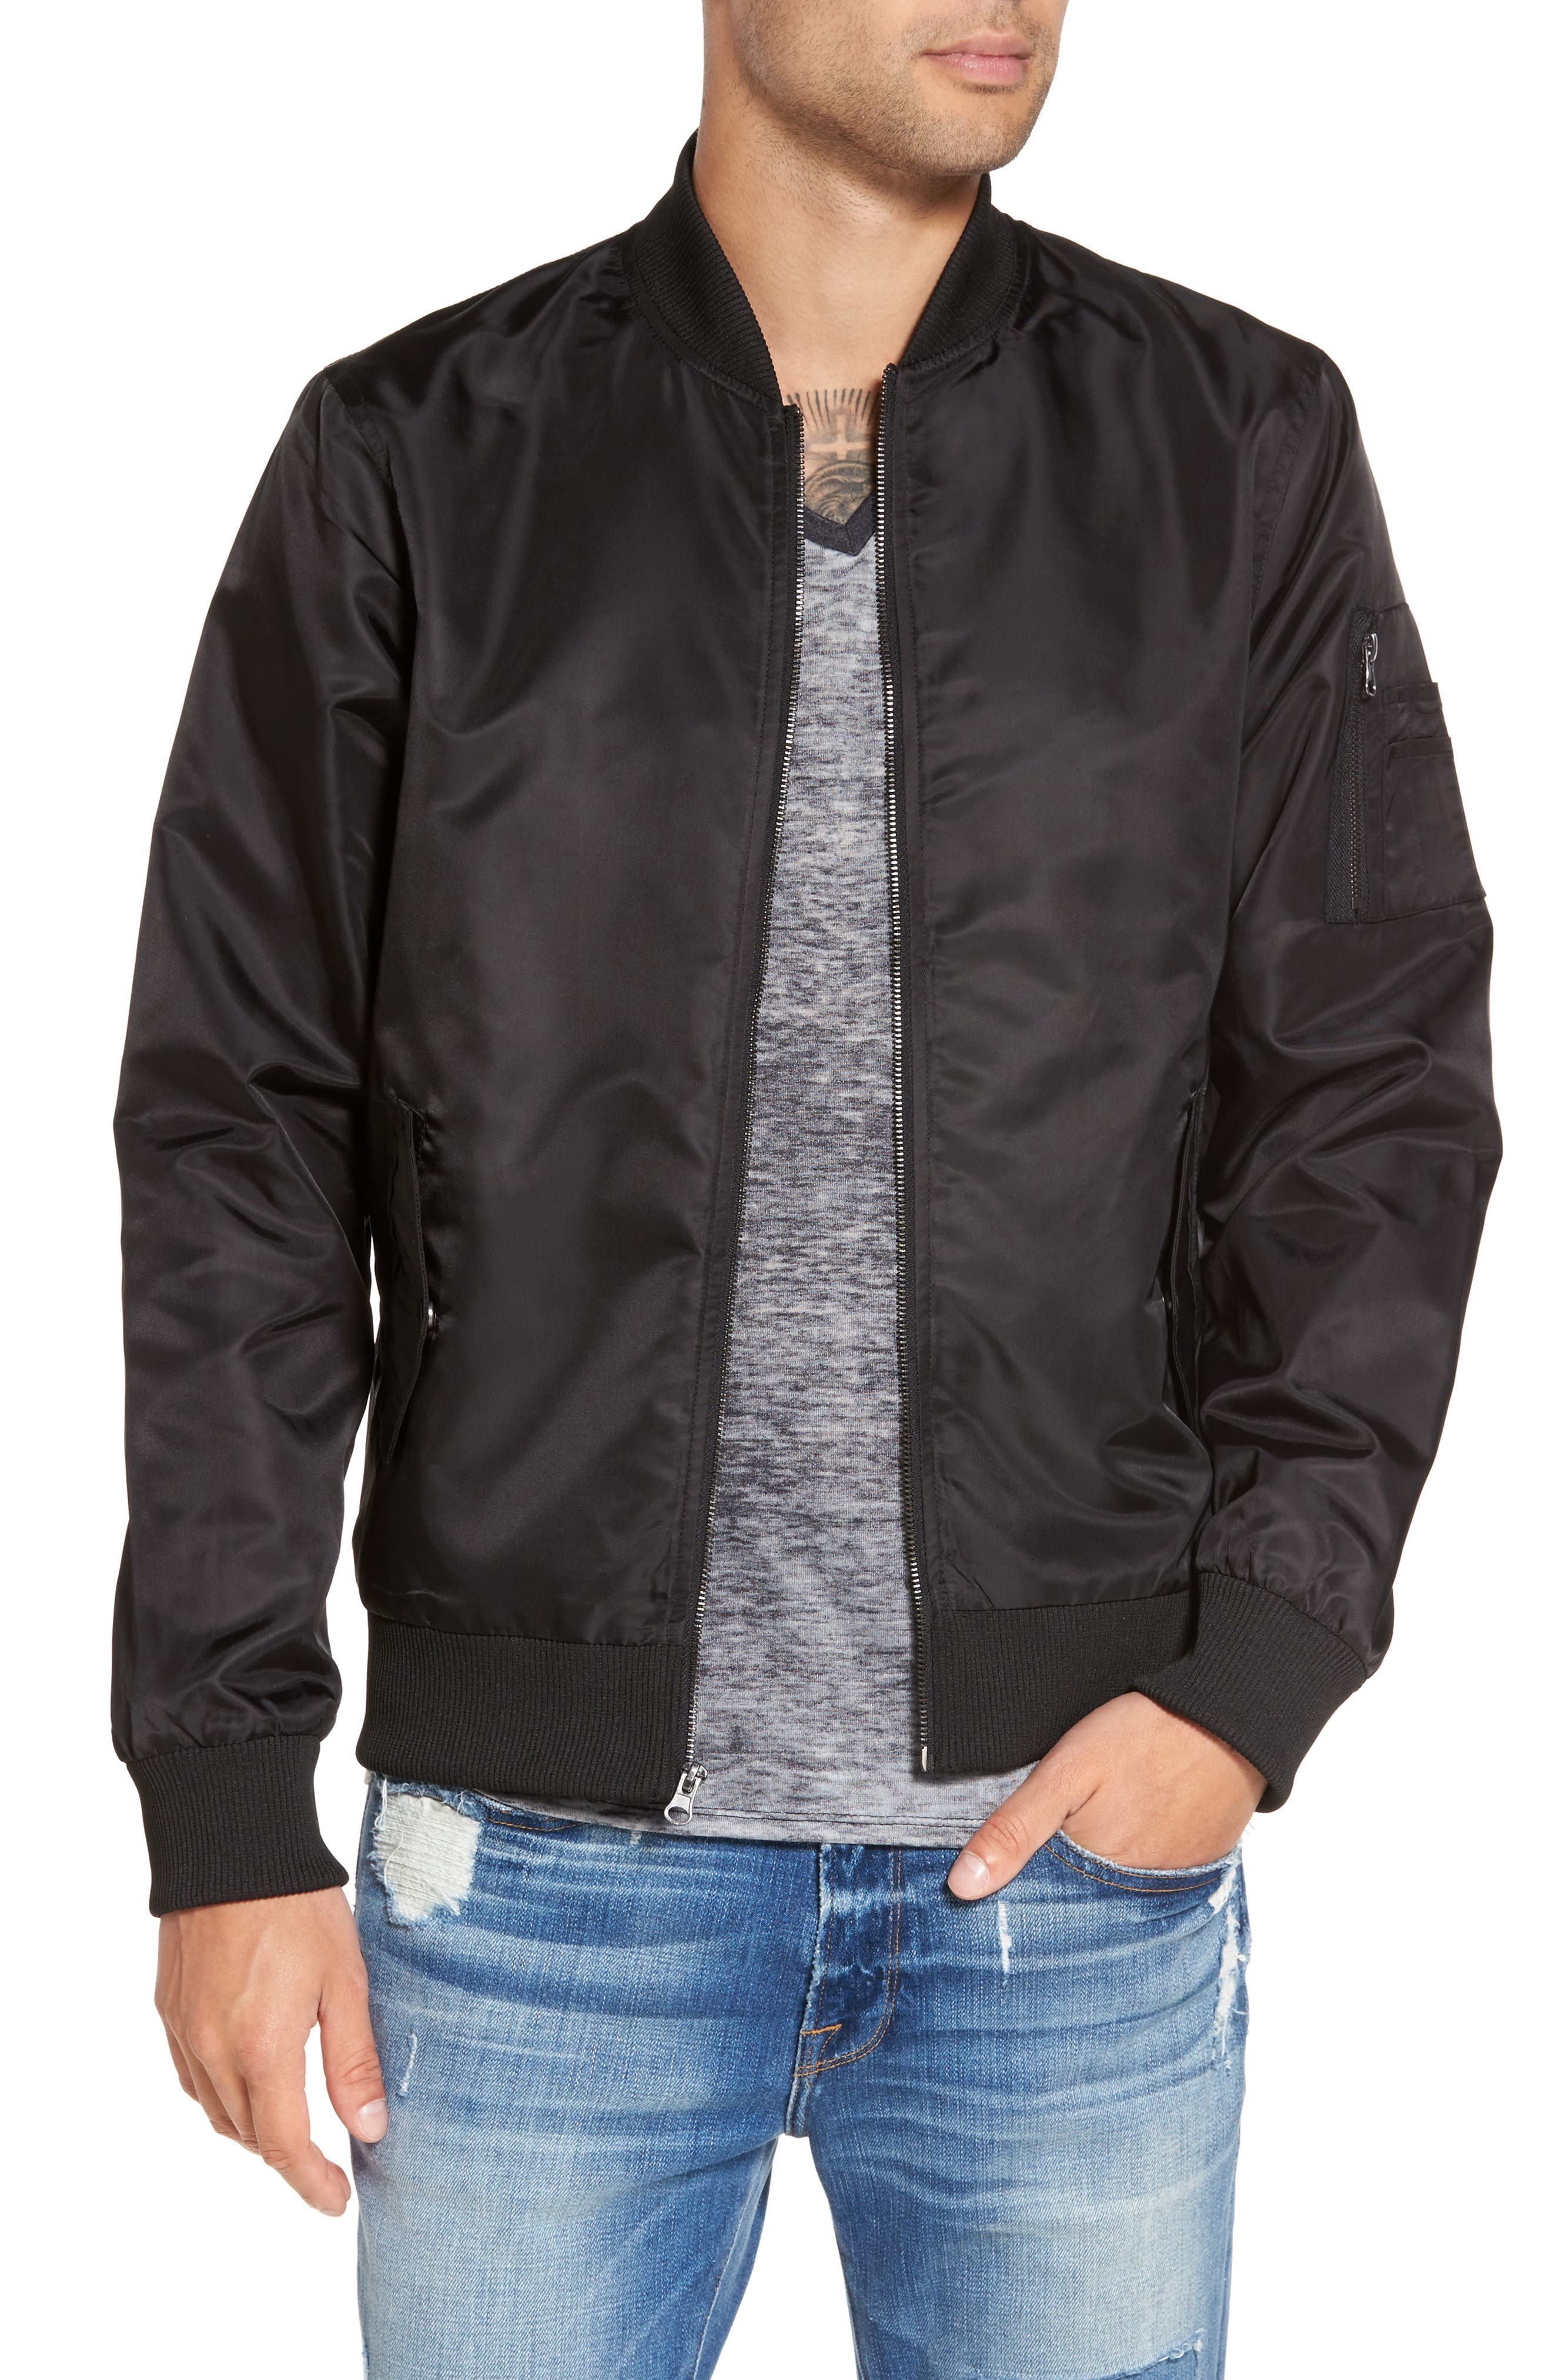 The Rail Nylon Bomber Jacket